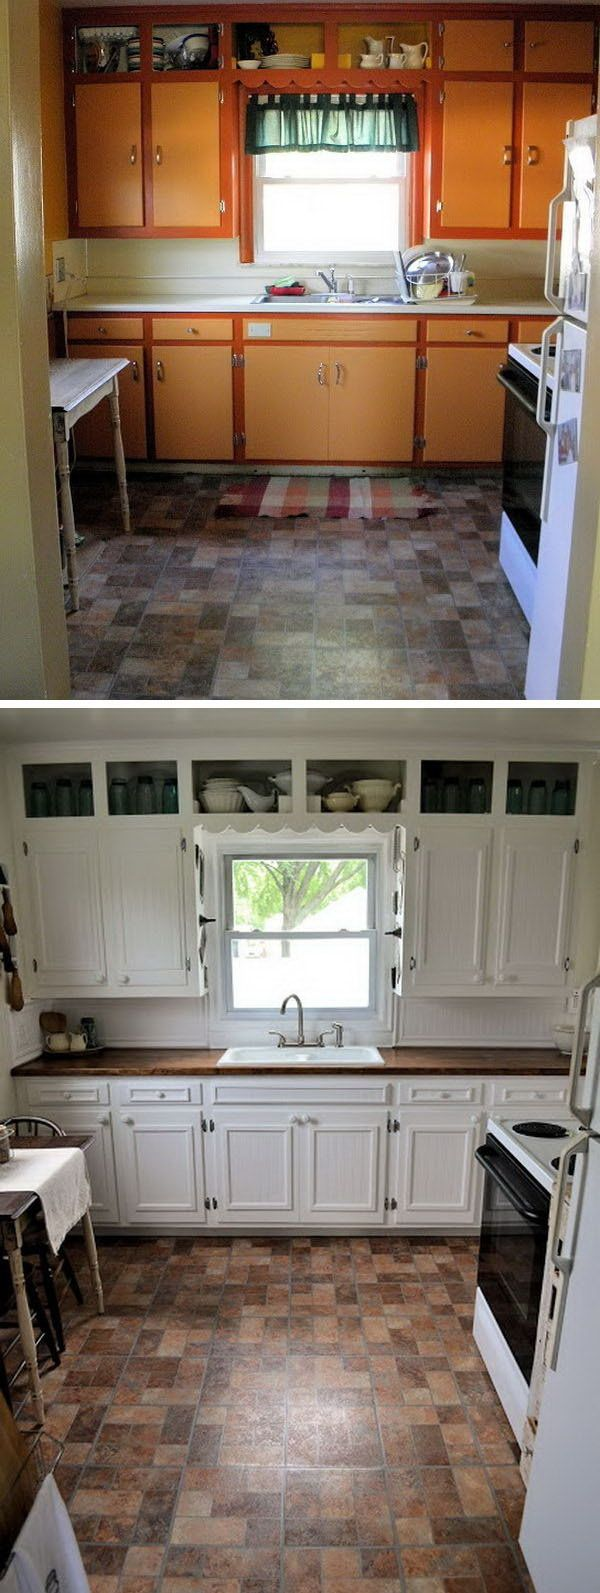 before and after 25 budget friendly kitchen makeover ideas